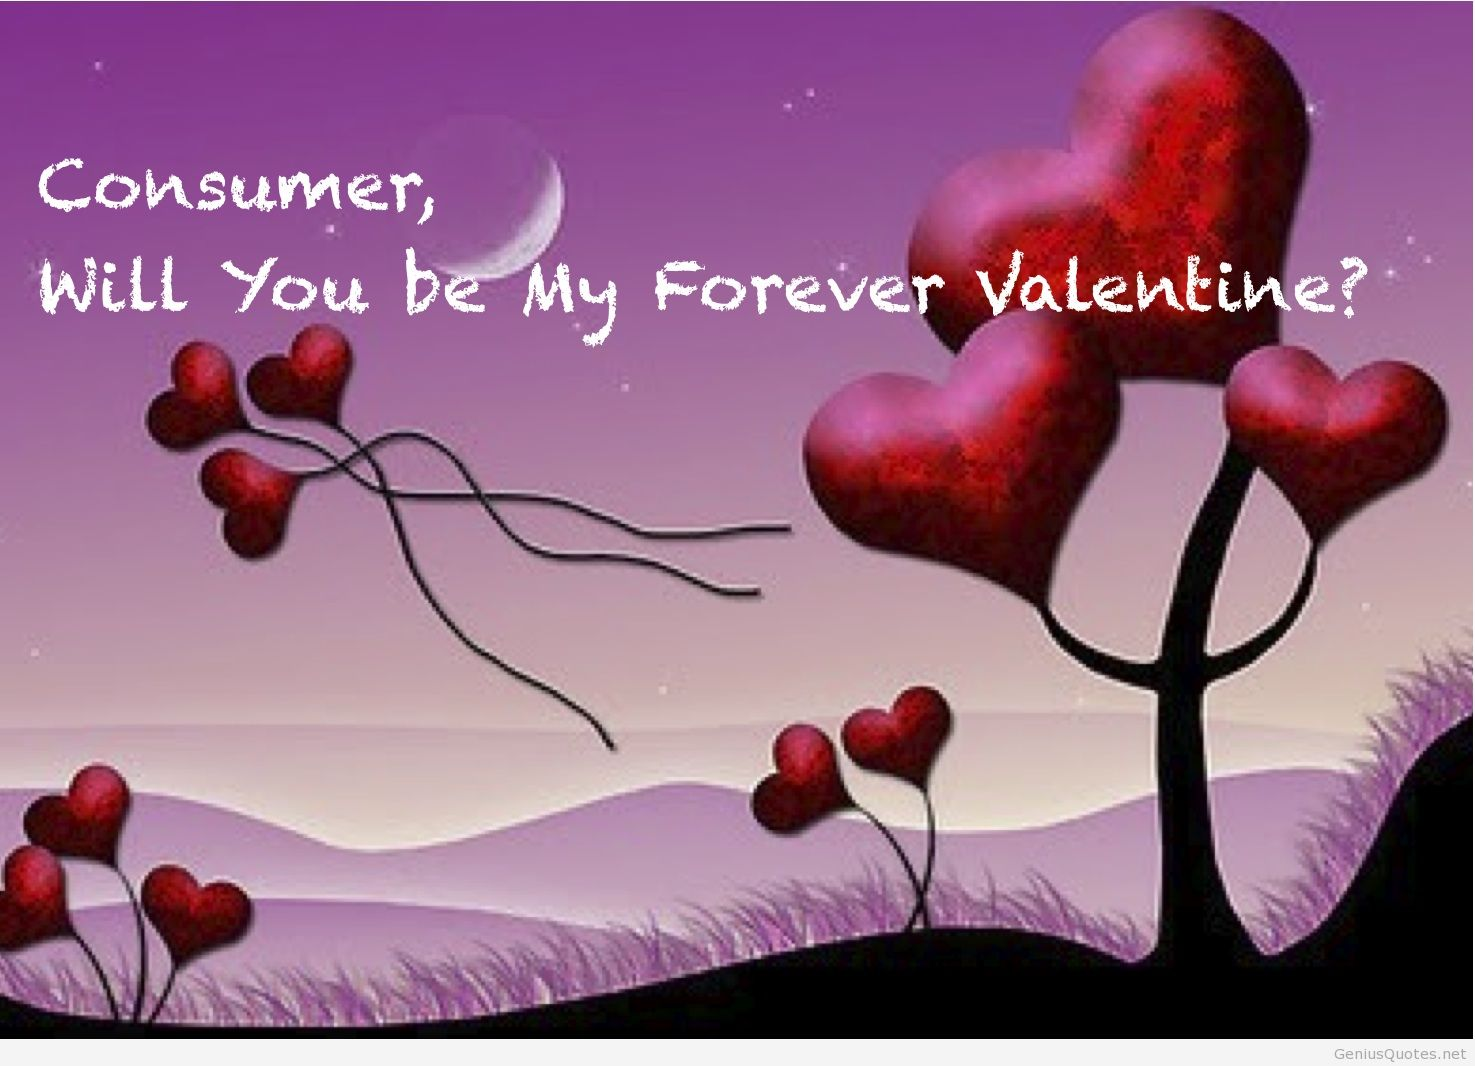 Consumer Will You Be My Forever Valentine Image